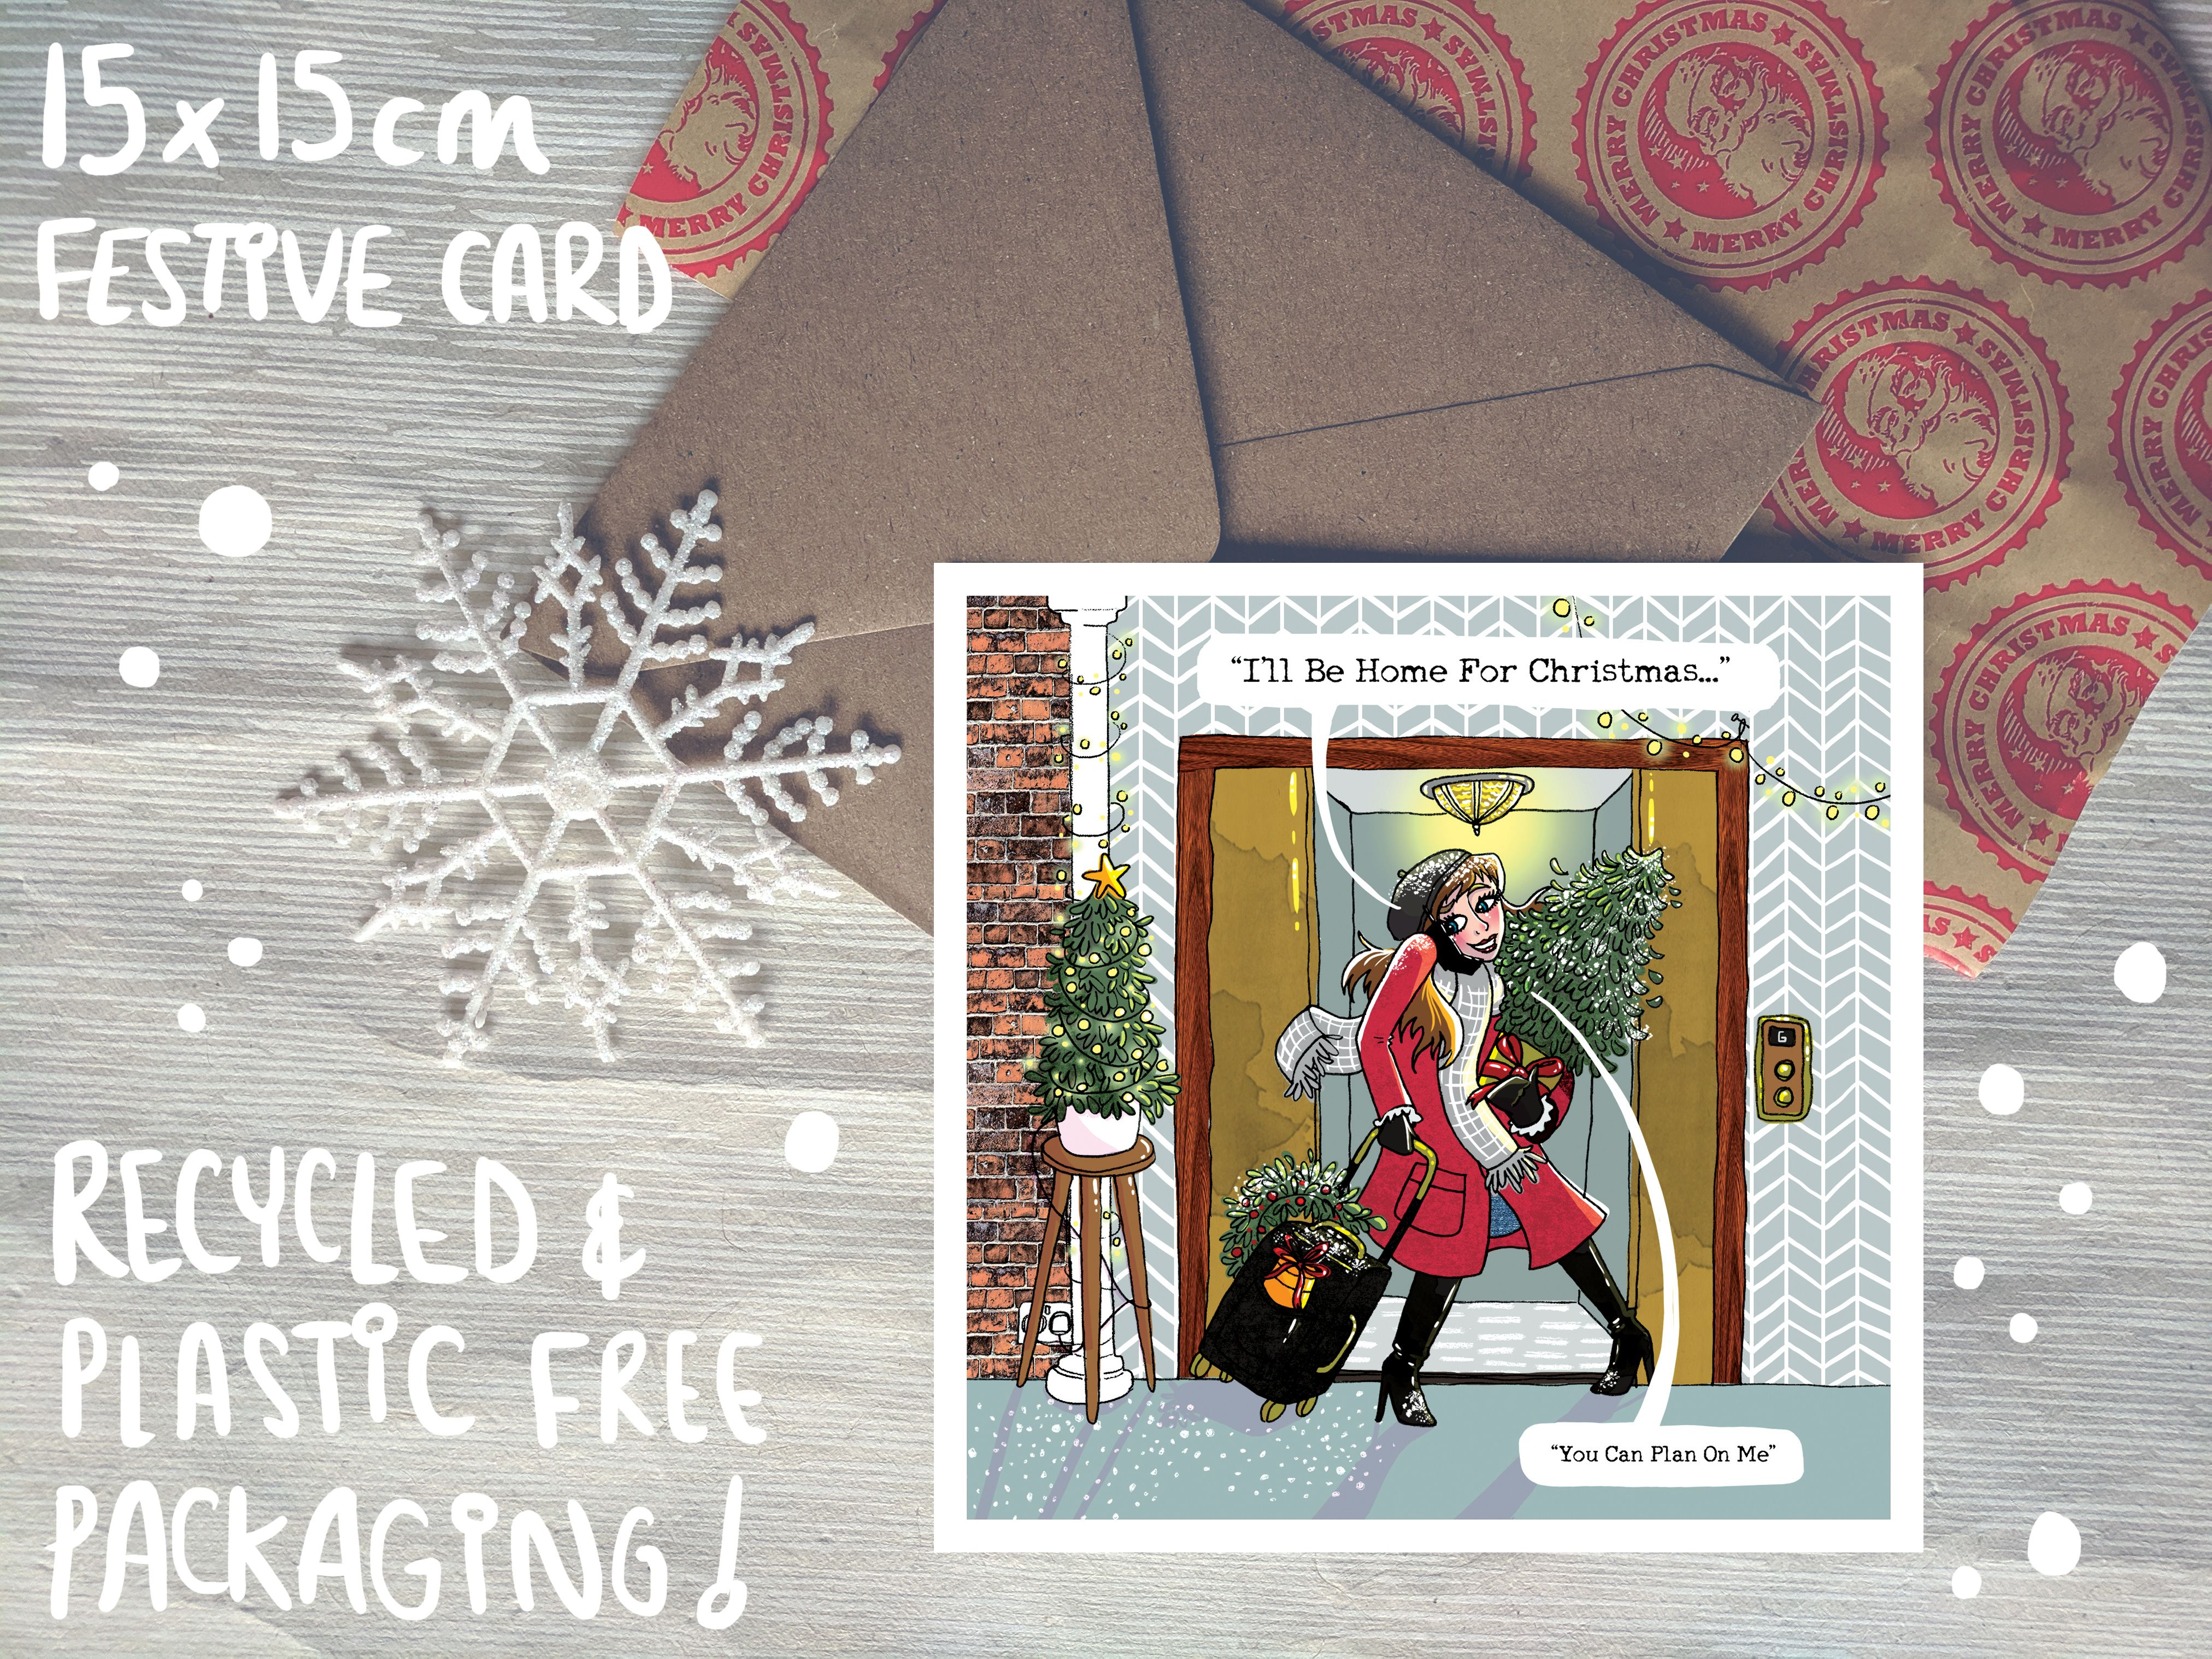 Pack Of 5 Illustrated Christmas Cards Etsy Christmas Card Illustration Christmas Cards Etsy Christmas Cards To Make